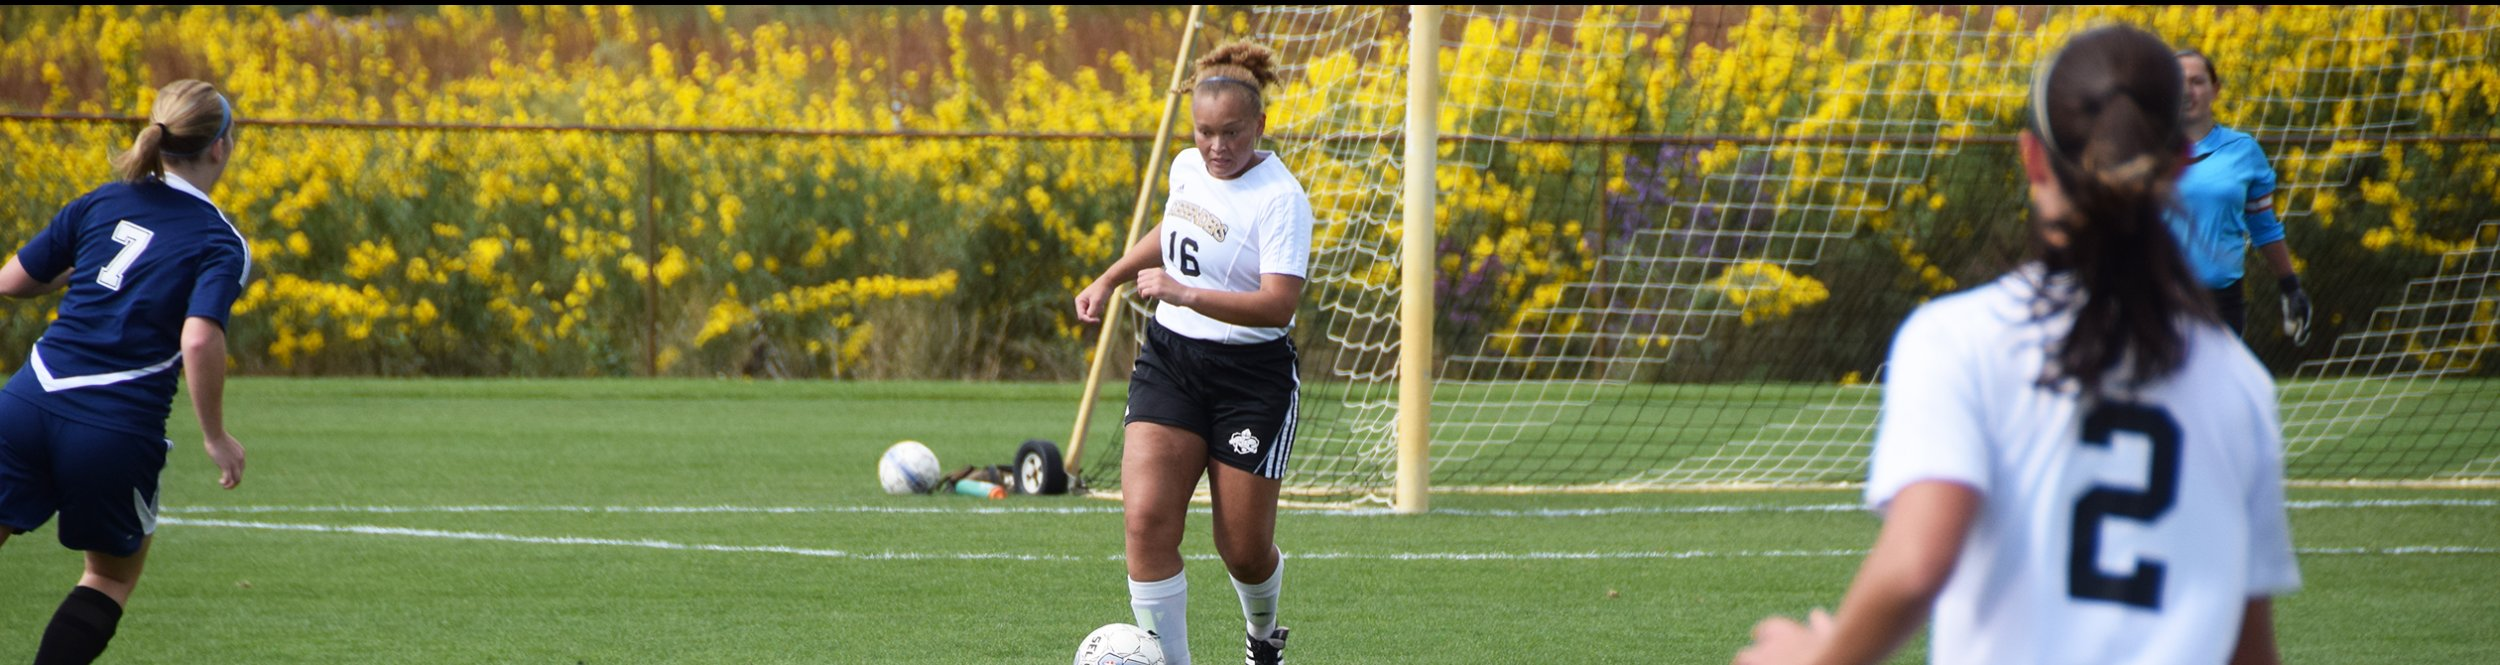 A female soccer player approaches the ball to kick it.